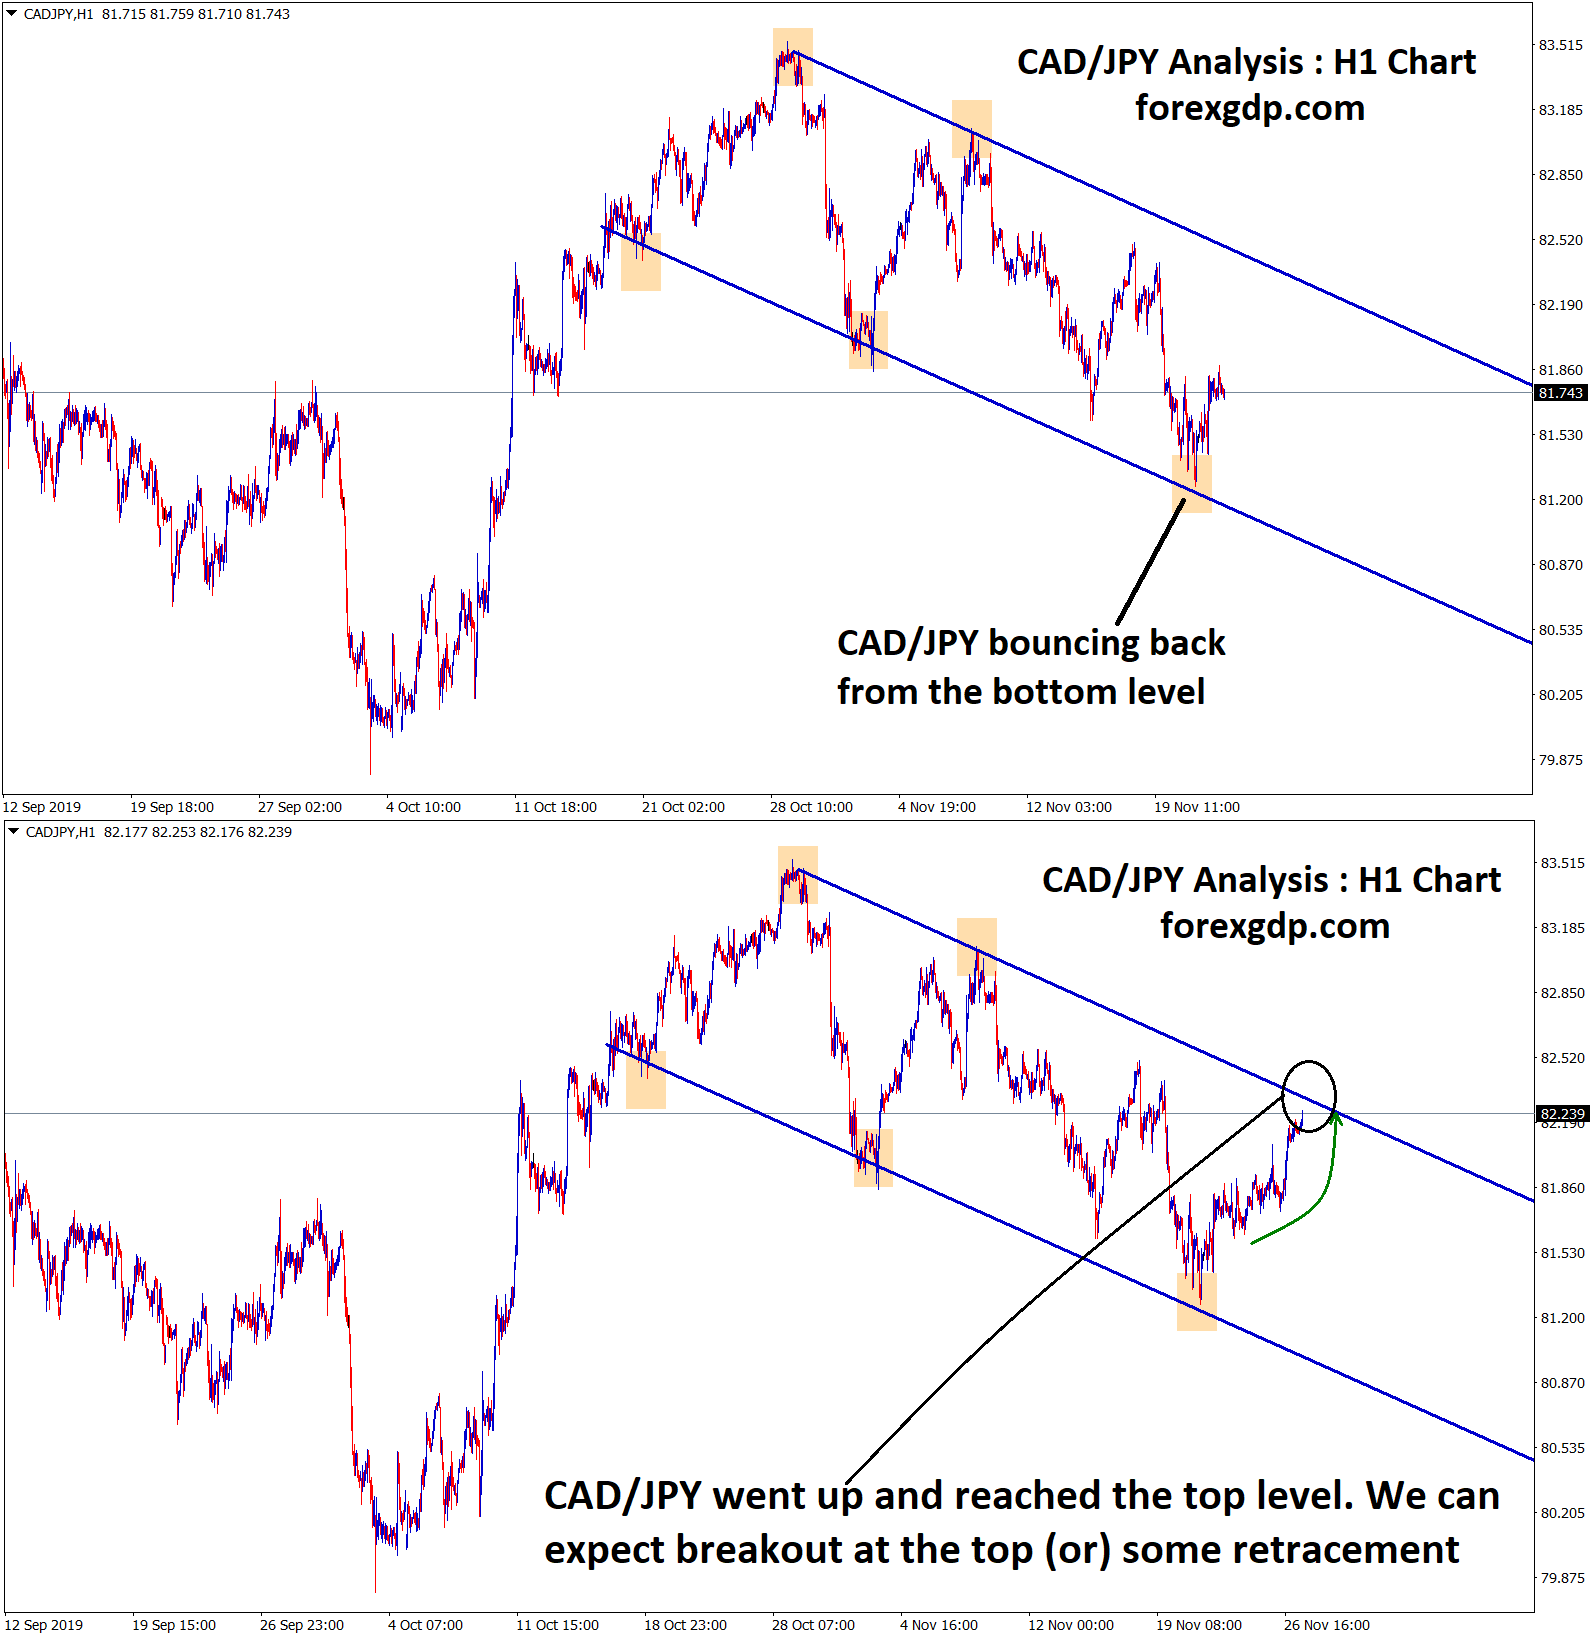 cad jpy touched the top level ,expecting for breakout or retracement